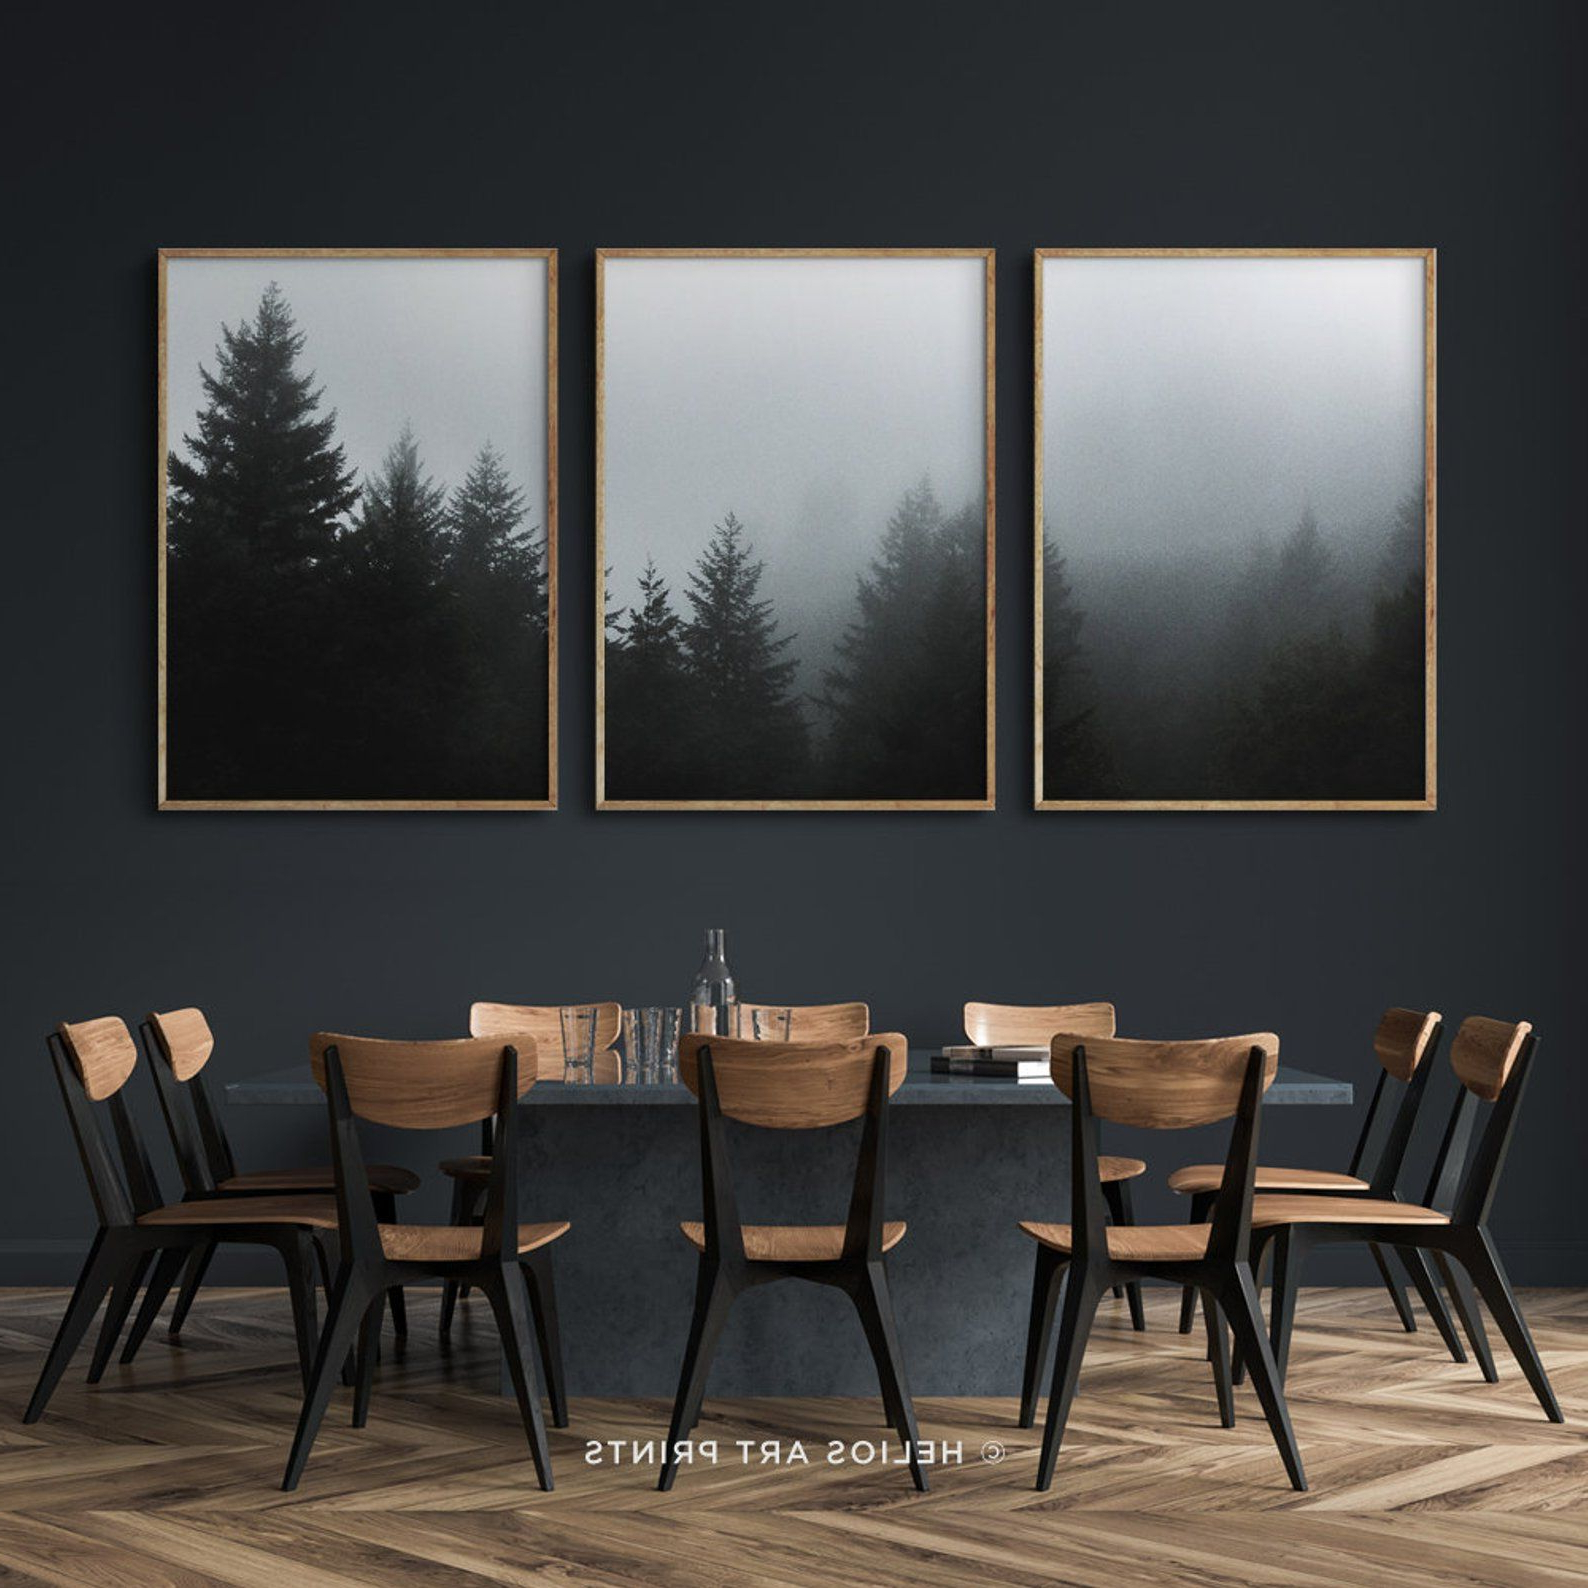 Wallflower 3 Piece Dining Sets Regarding Most Current Set Of Three Deep Green Misty Forest Art Prints, Set Of 3 Misty (View 5 of 25)